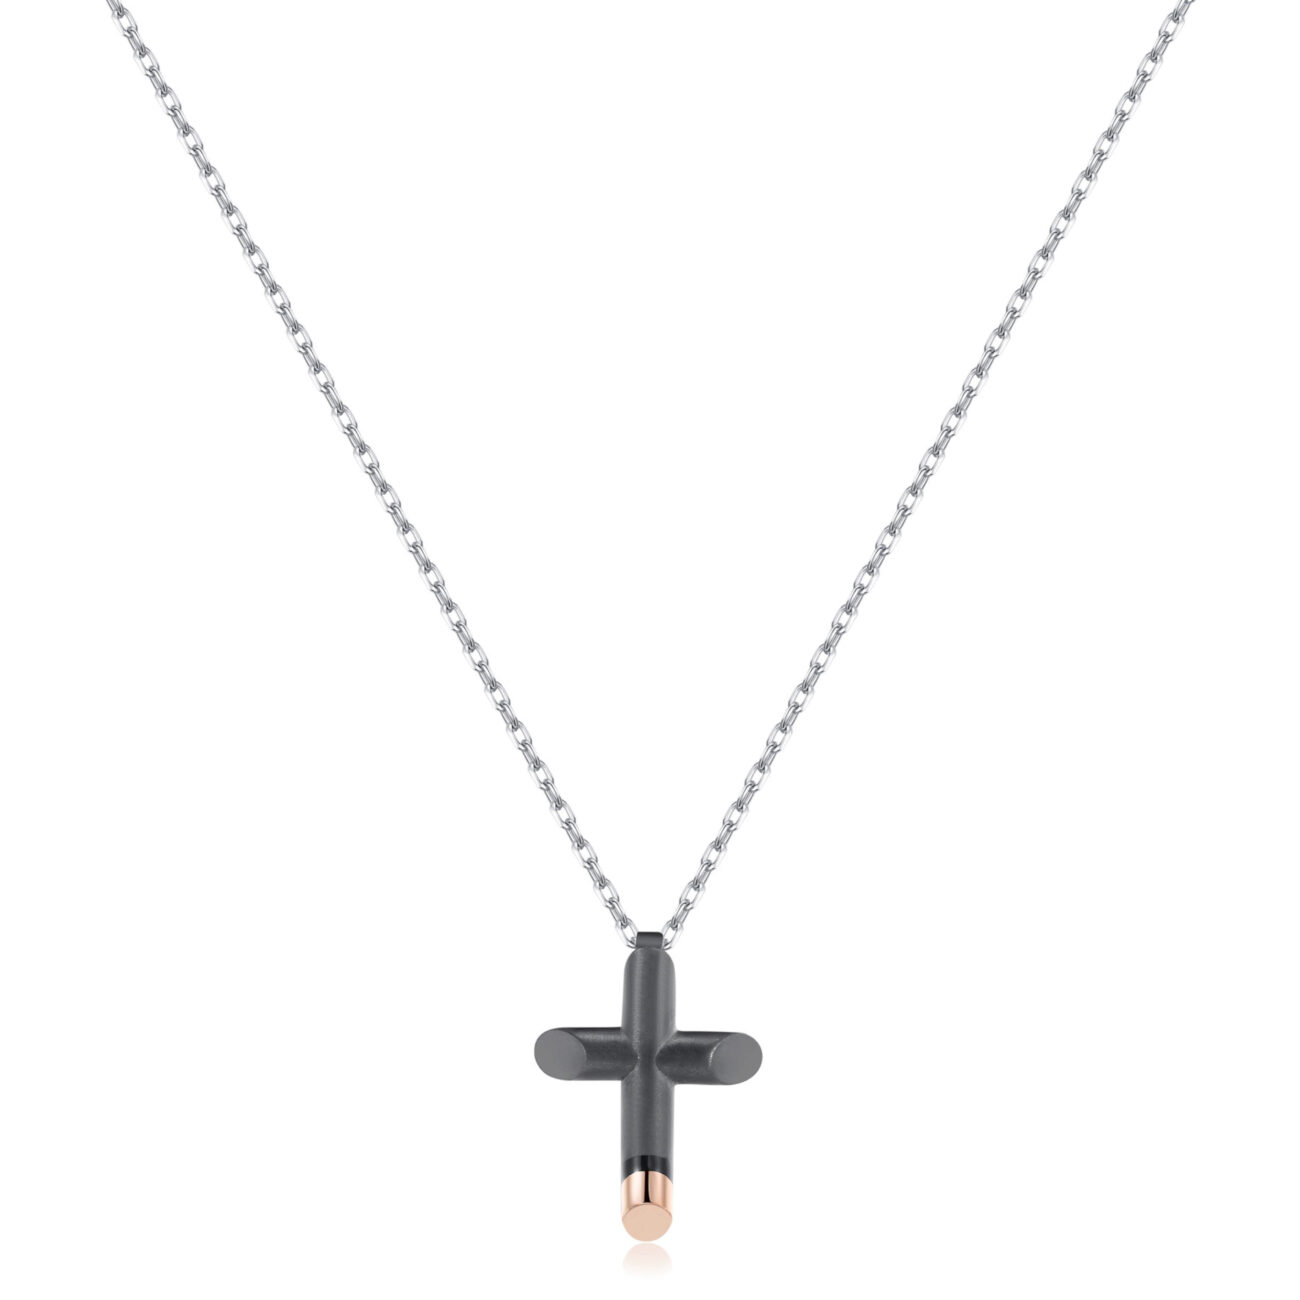 316L stainless steel necklace, comfort fit, cross pendant in gray gun satin pvd, rose gold pvd finishes and deep black enamel detail.